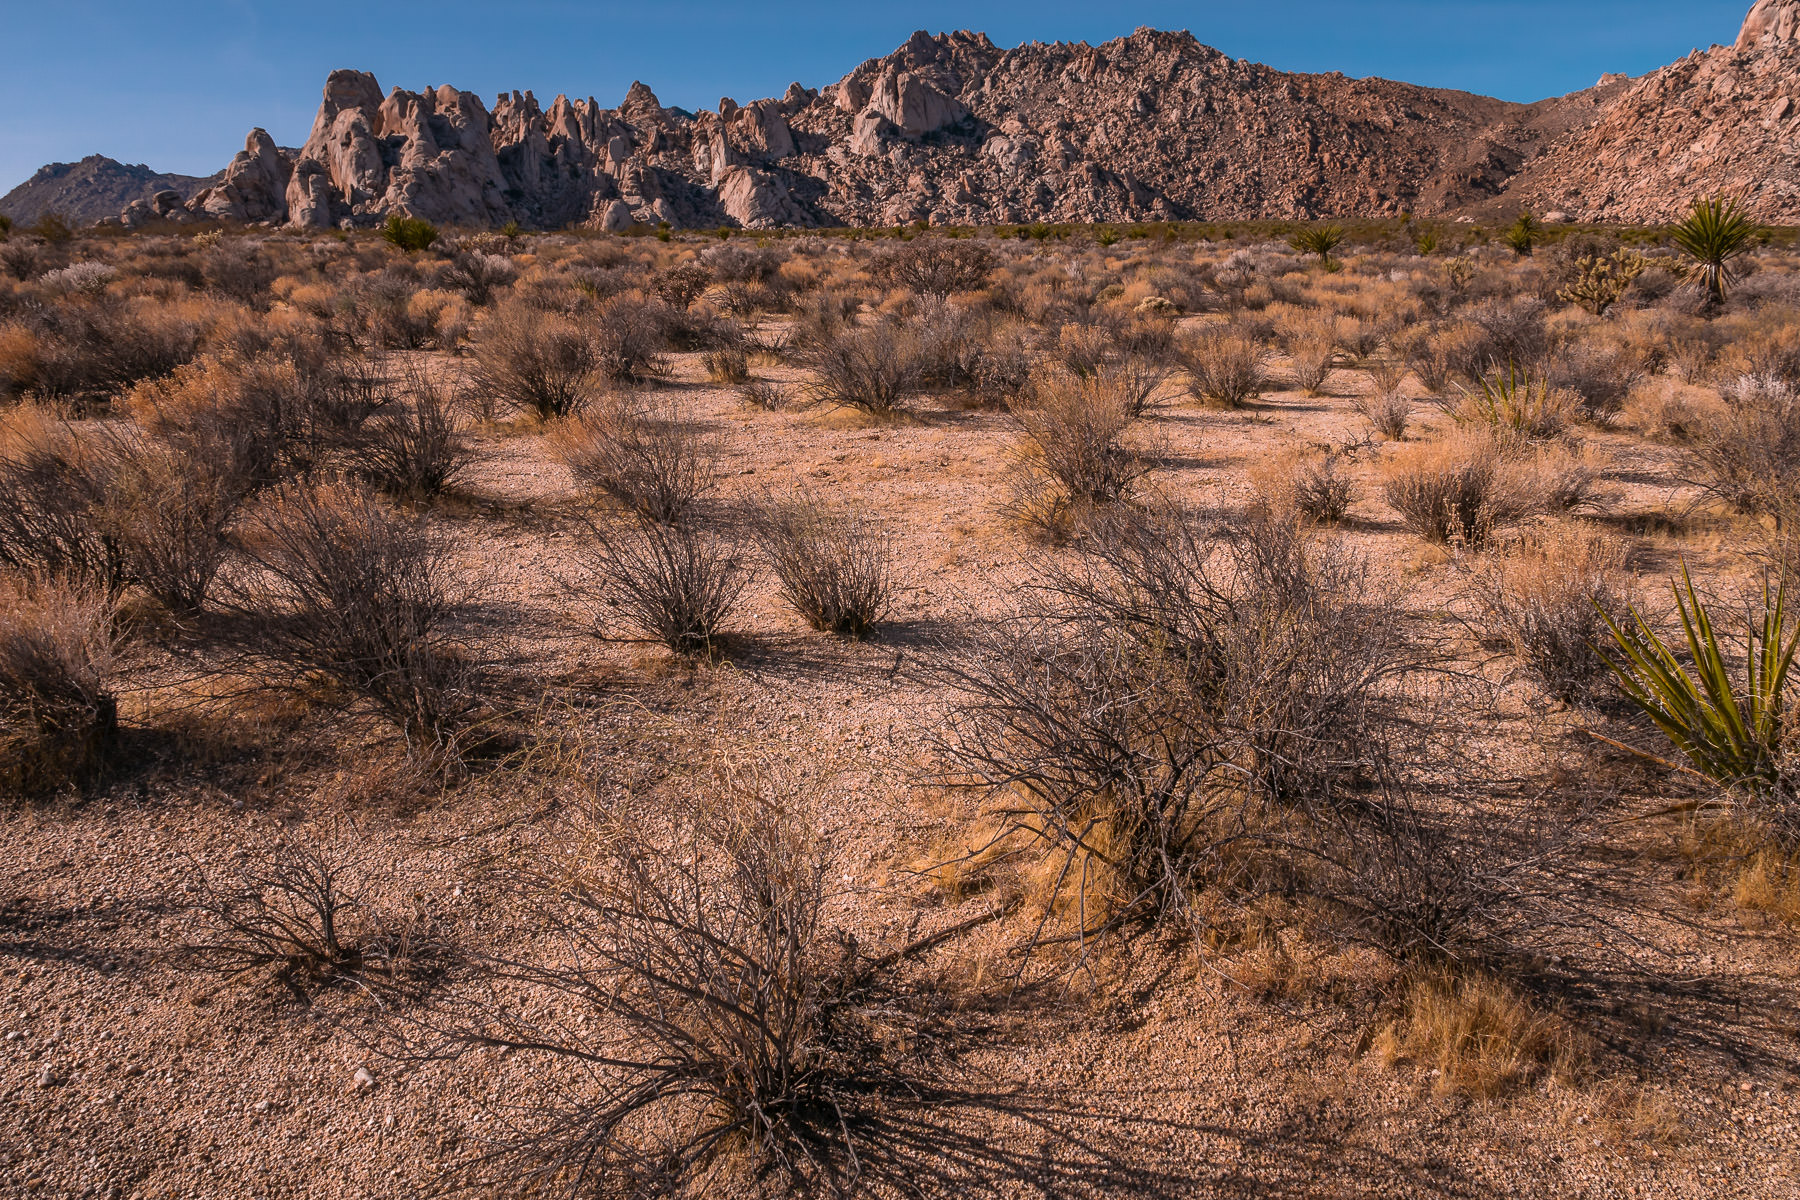 The dry desert landscape of California's Mojave National Preserve.